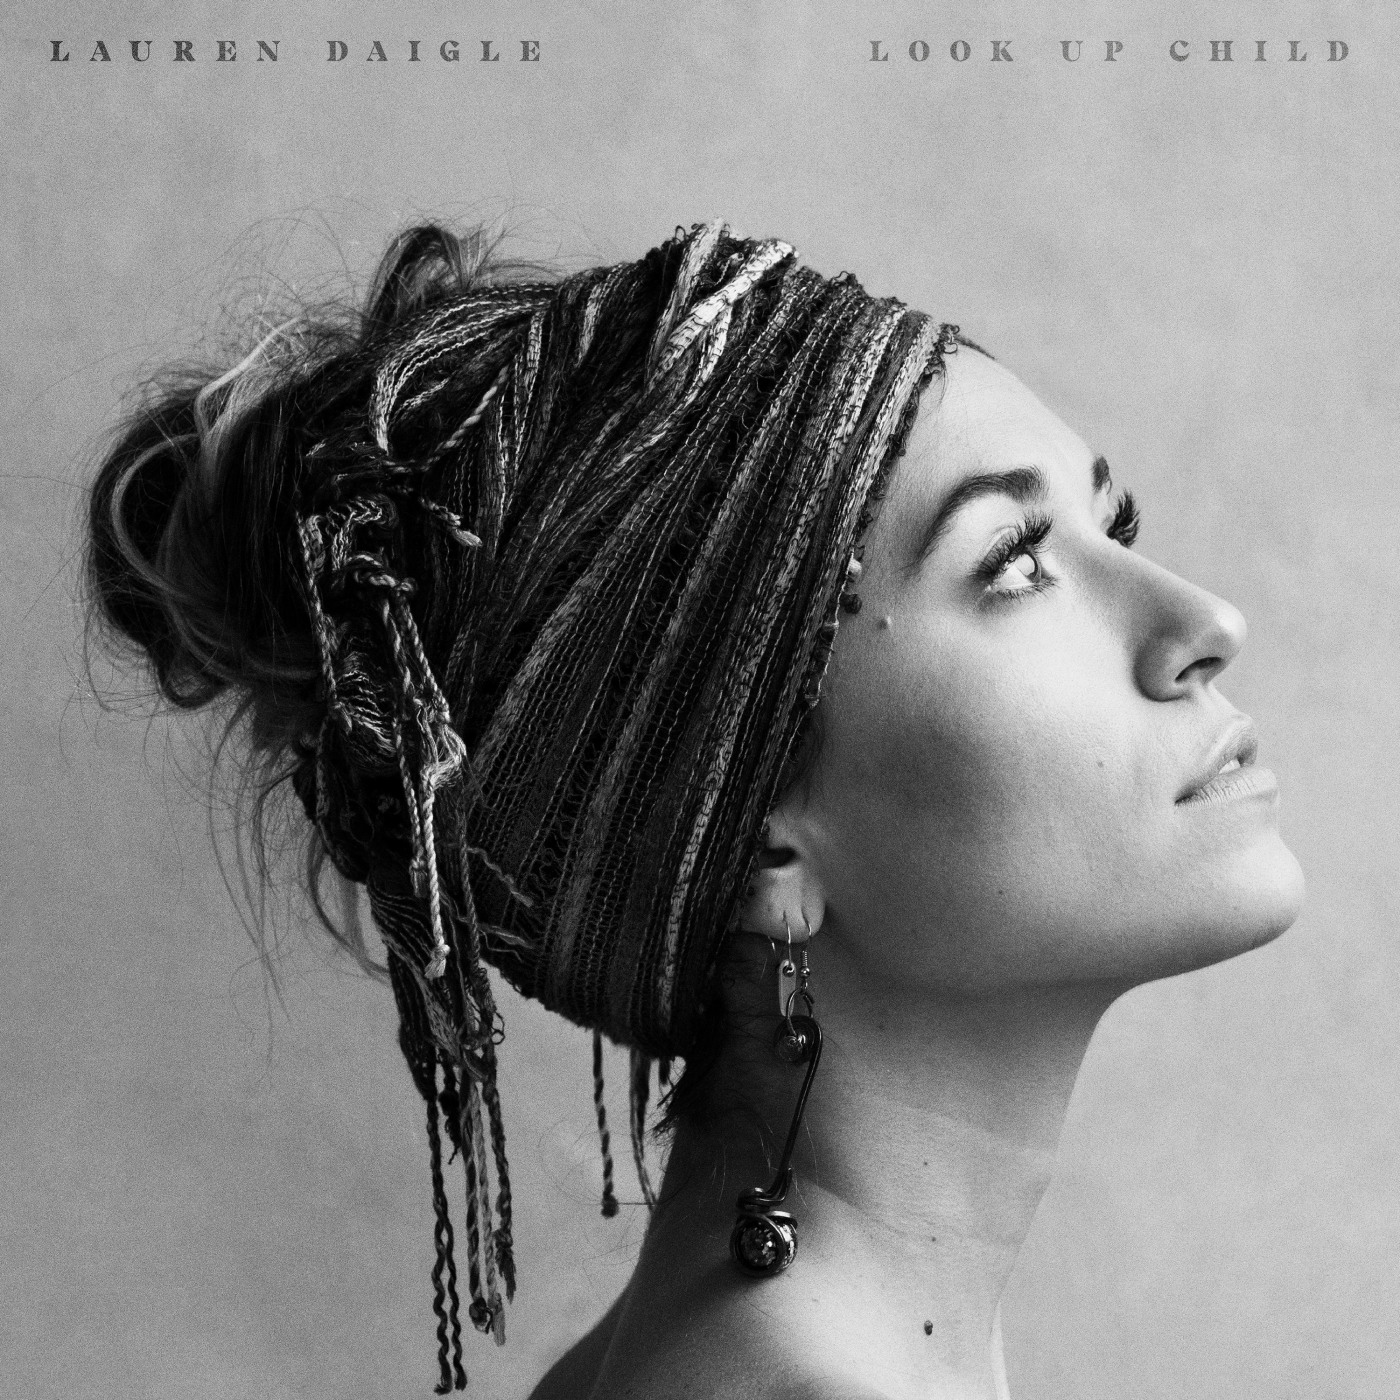 lauren daigle u0026 39 s  u0026quot look up child u0026quot  pacing for  2 on top album sales   3 on billboard 200